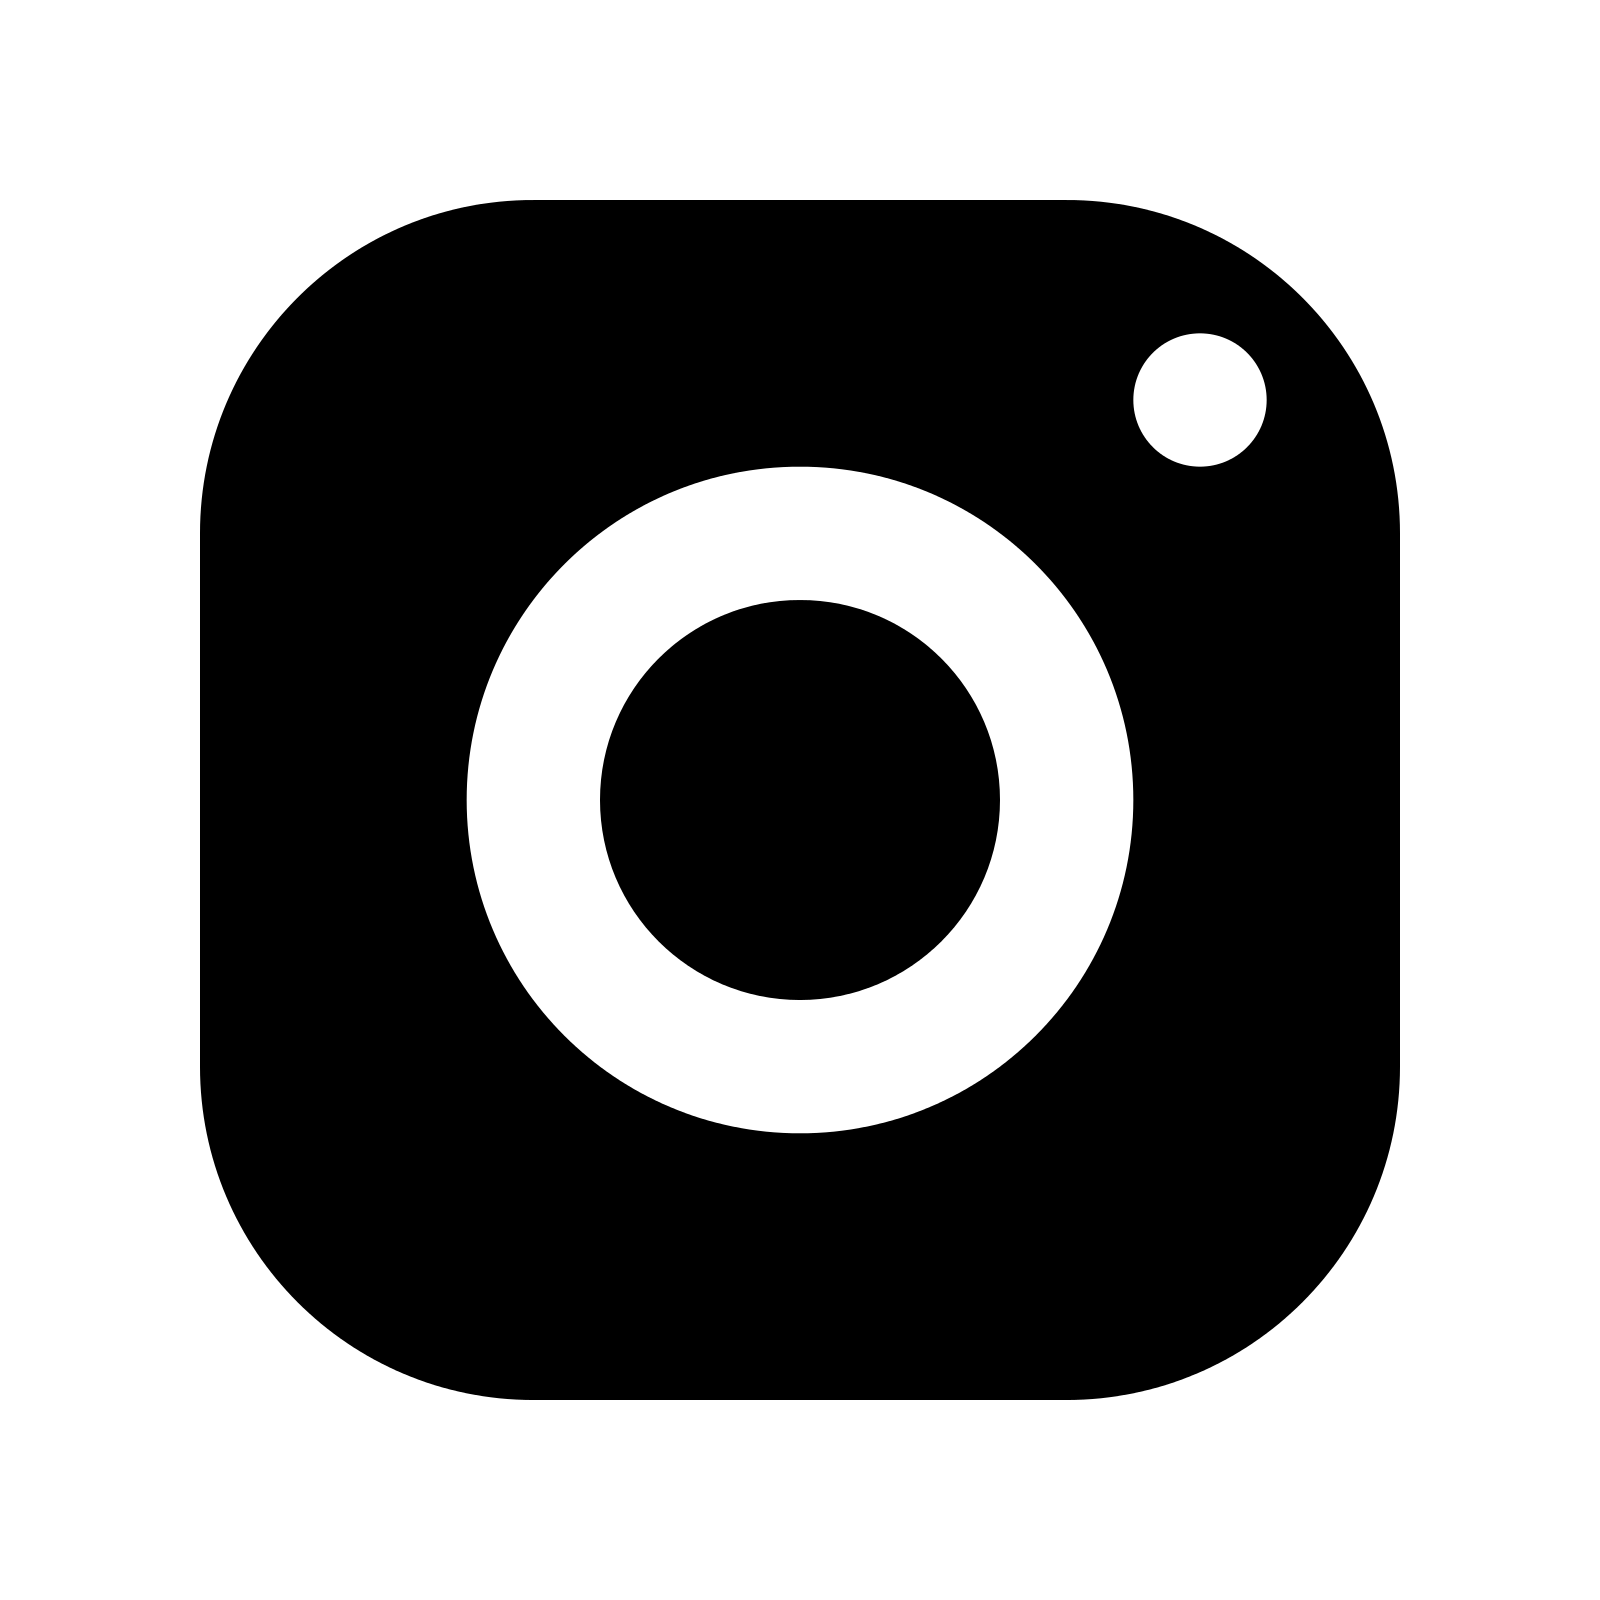 White Instagram Logo Vector at GetDrawings | Free download